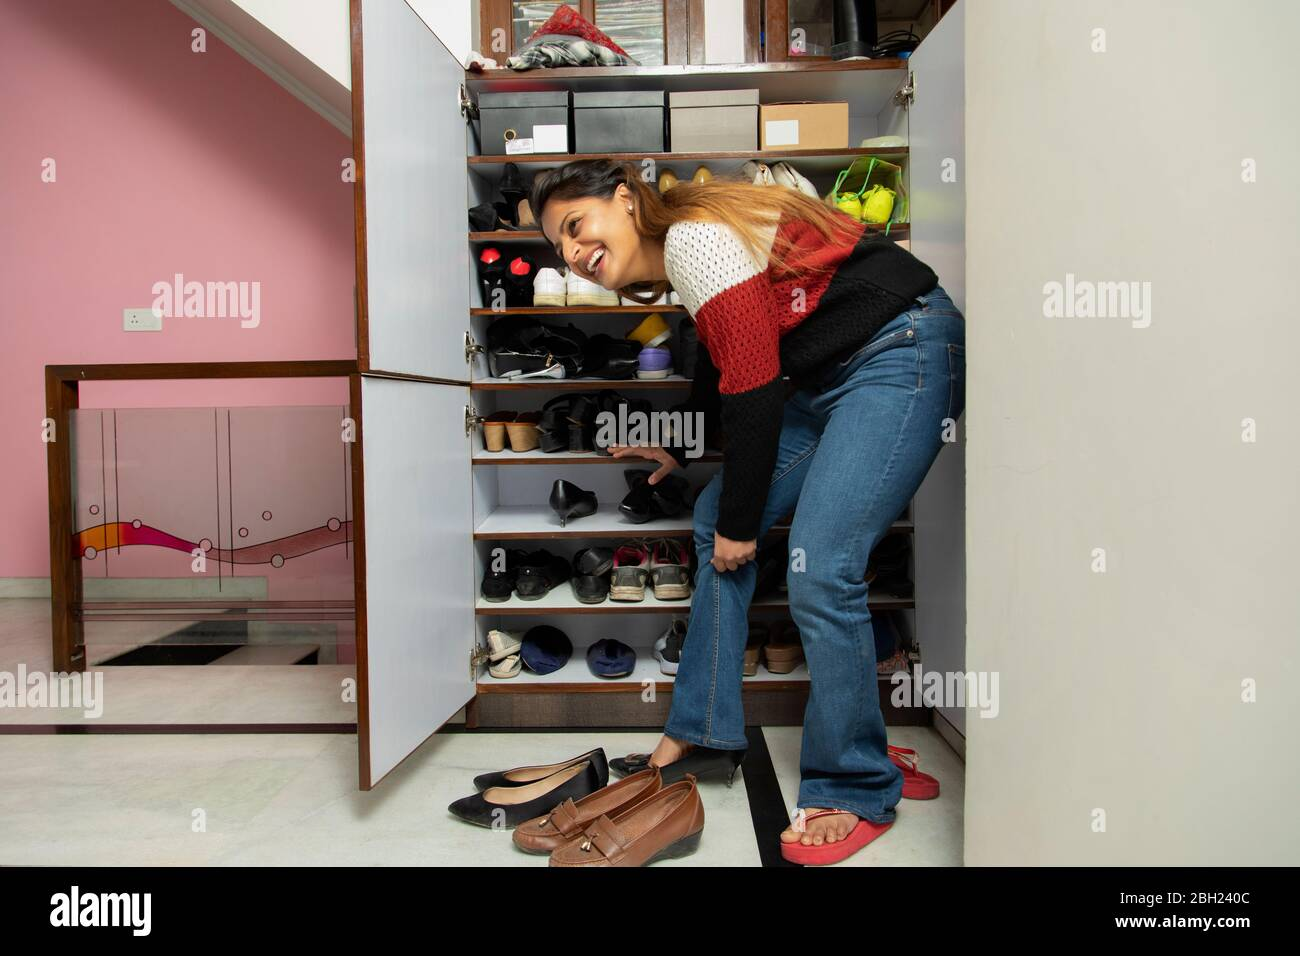 https www alamy com woman trying on heels from the shoe rack at home image354703564 html